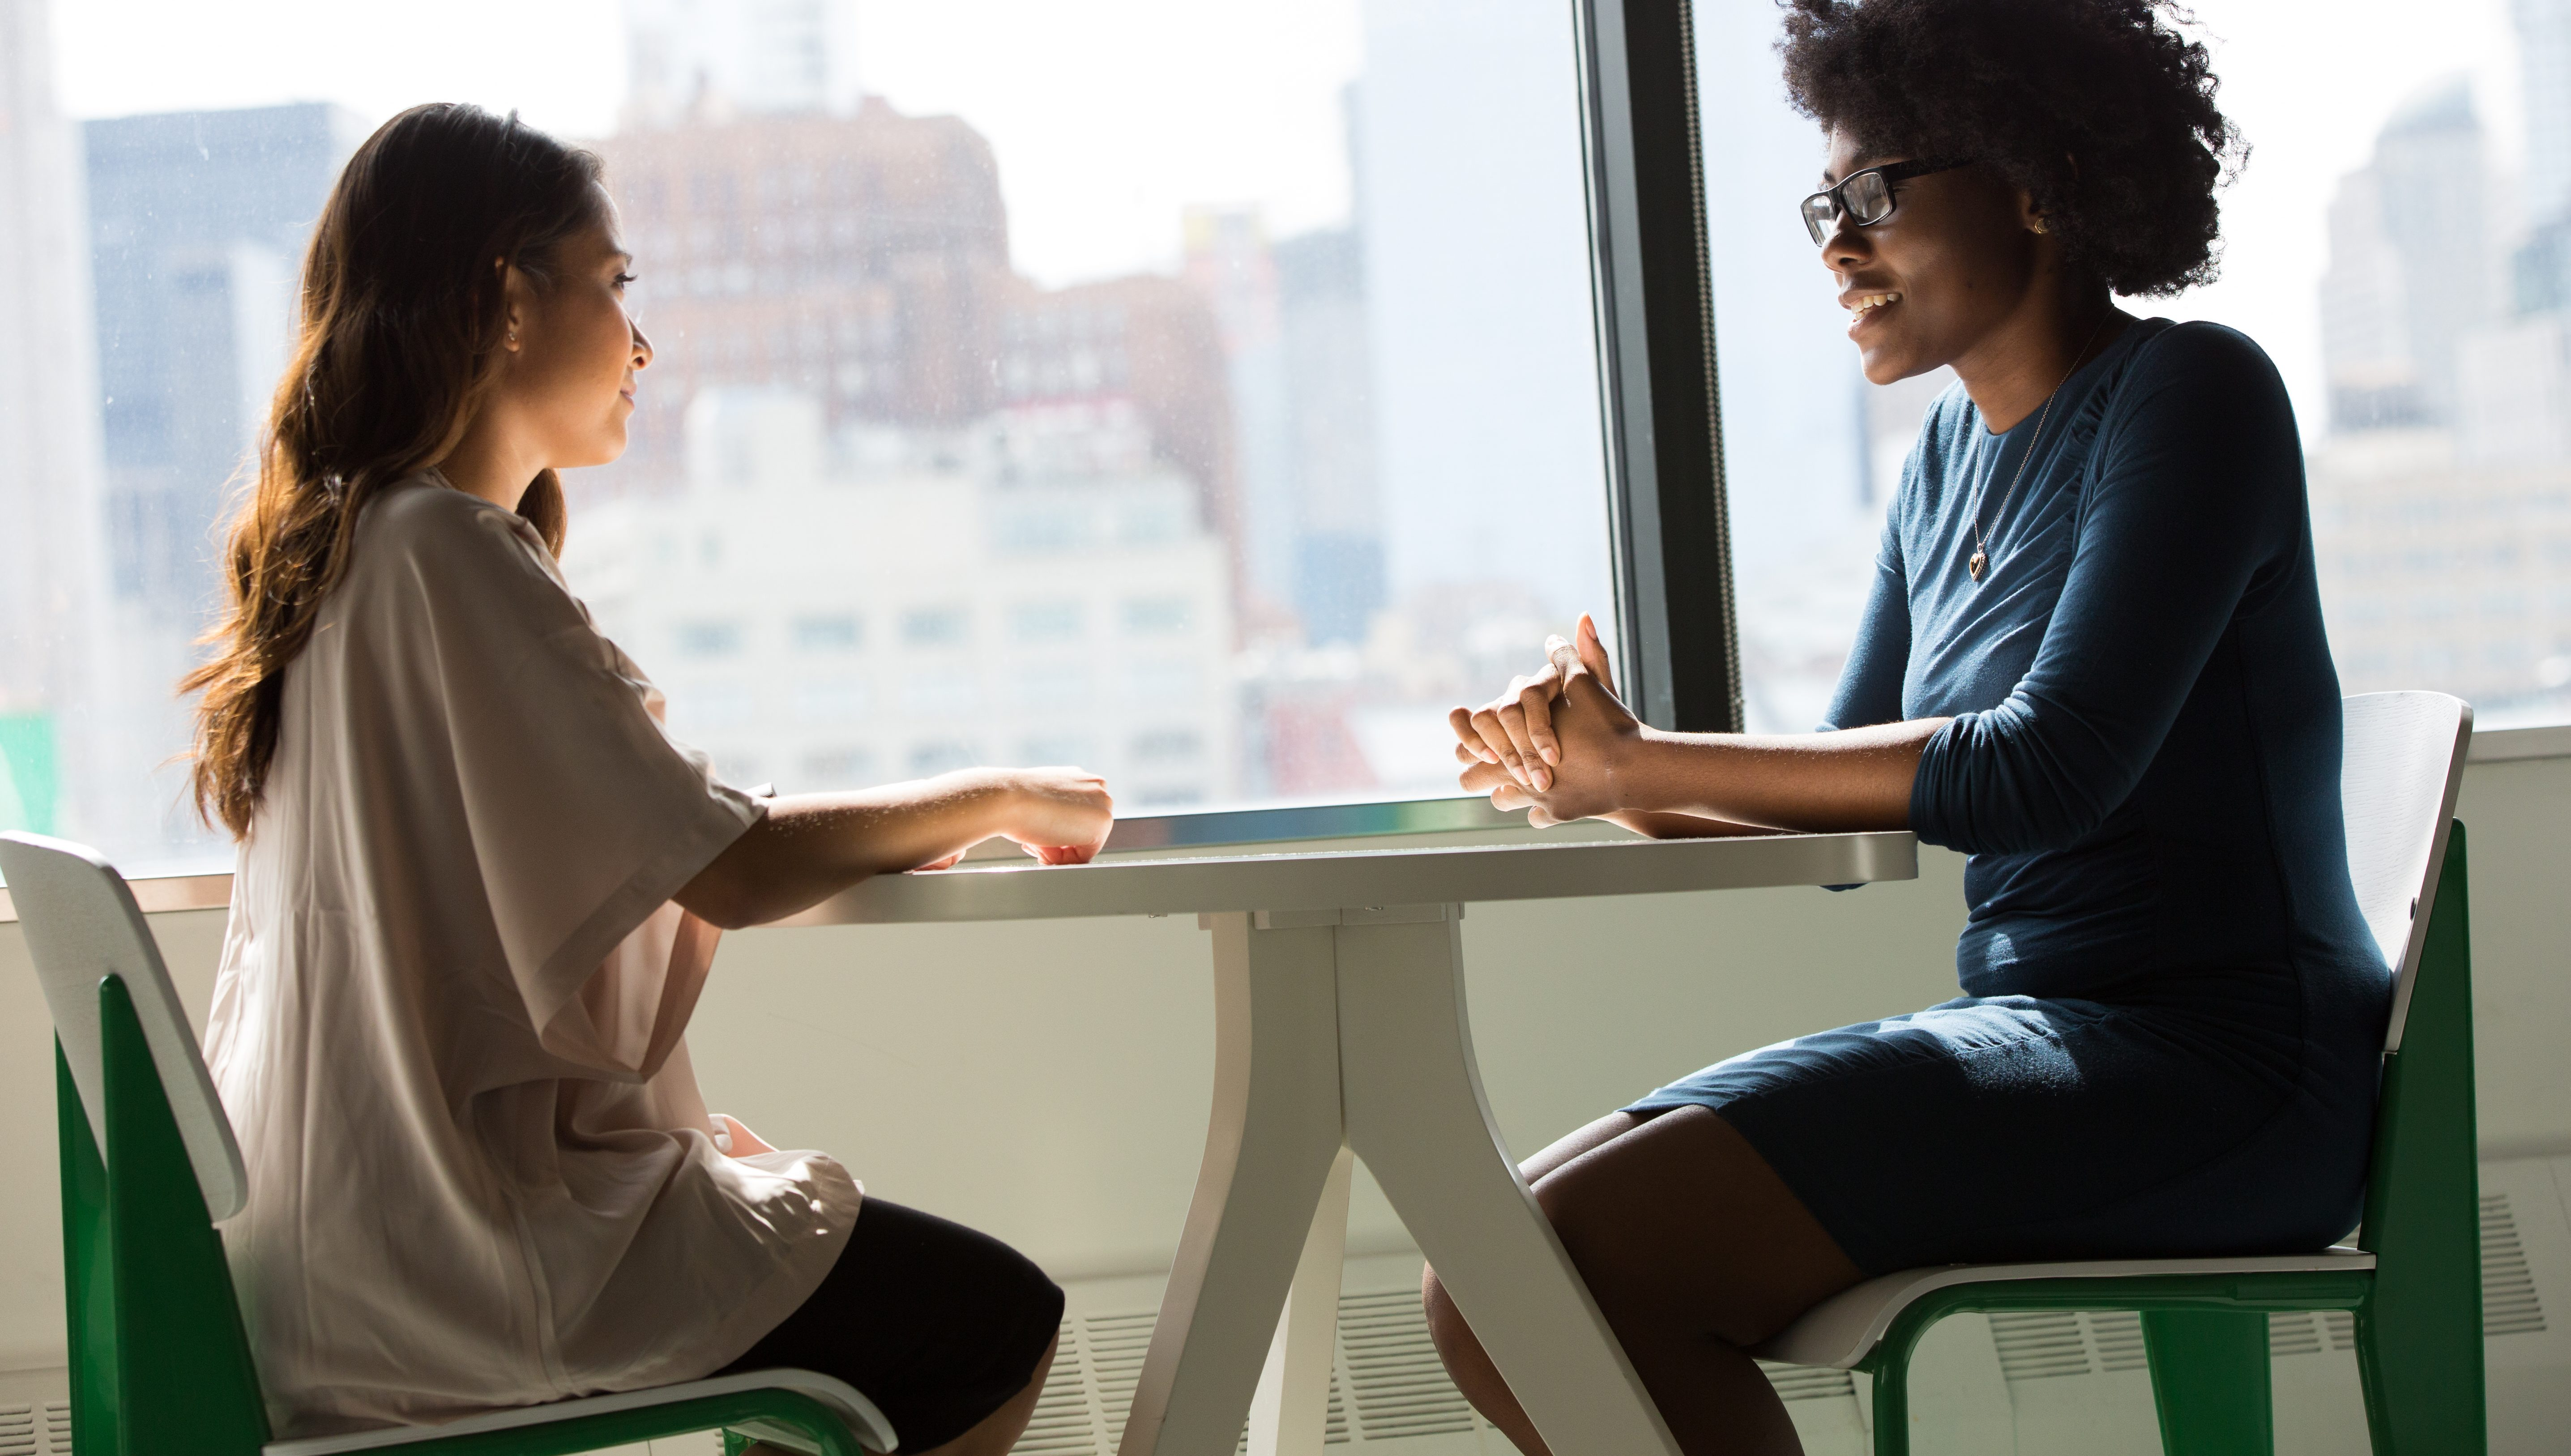 Two women sitting at a table talking